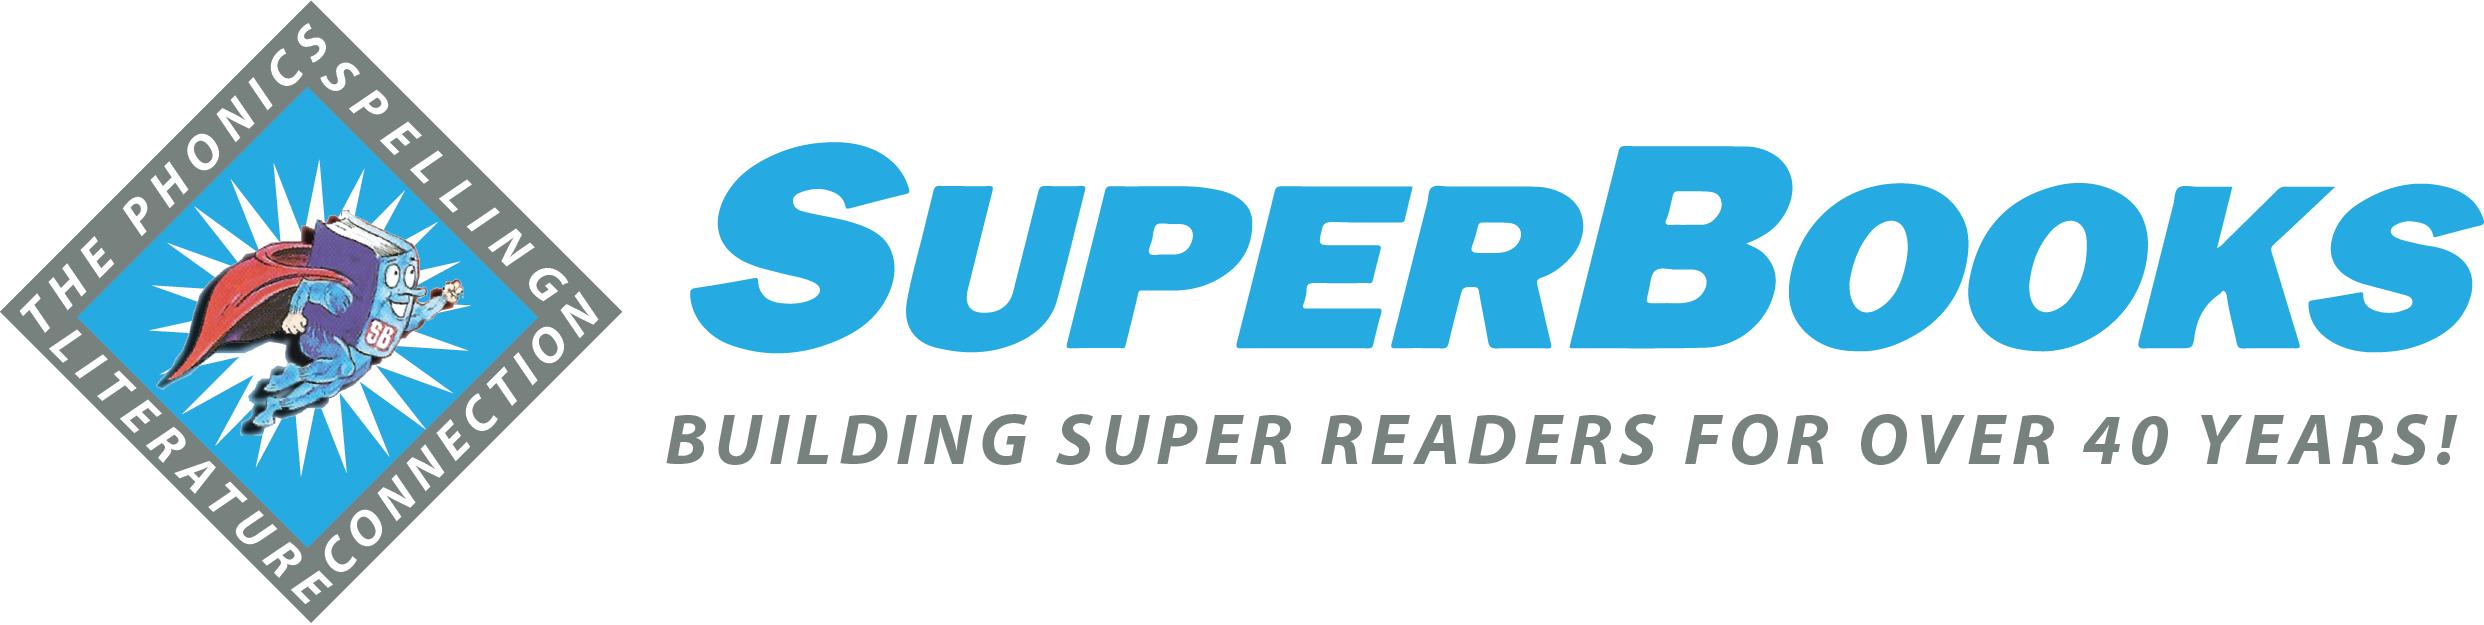 Super Books